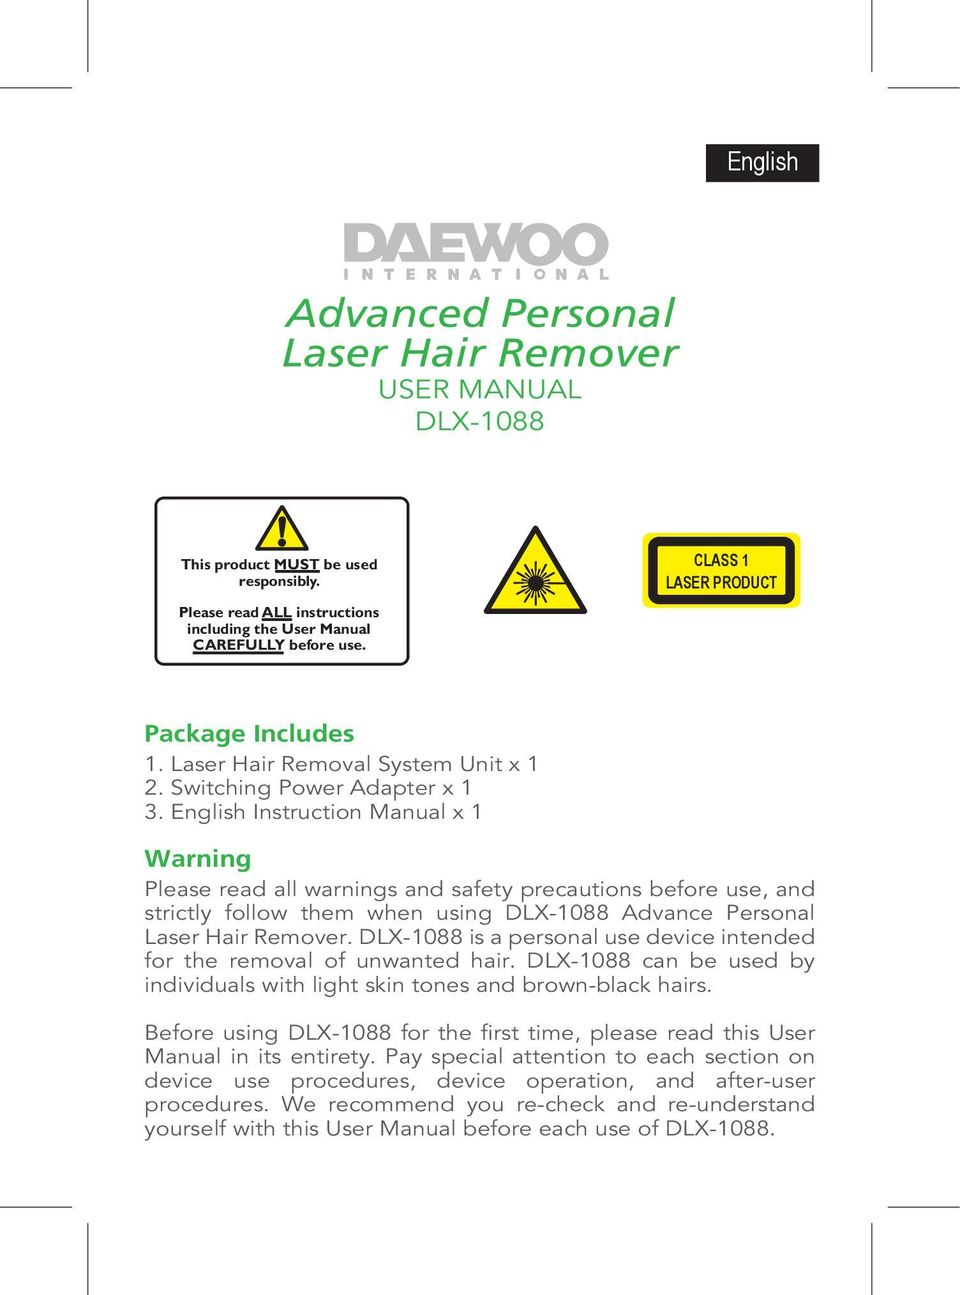 English Instruction Manual x 1 Warning Please read all warnings and safety precautions before use, and strictly follow them when using DLX-1088 Advance Personal Laser Hair Remover.